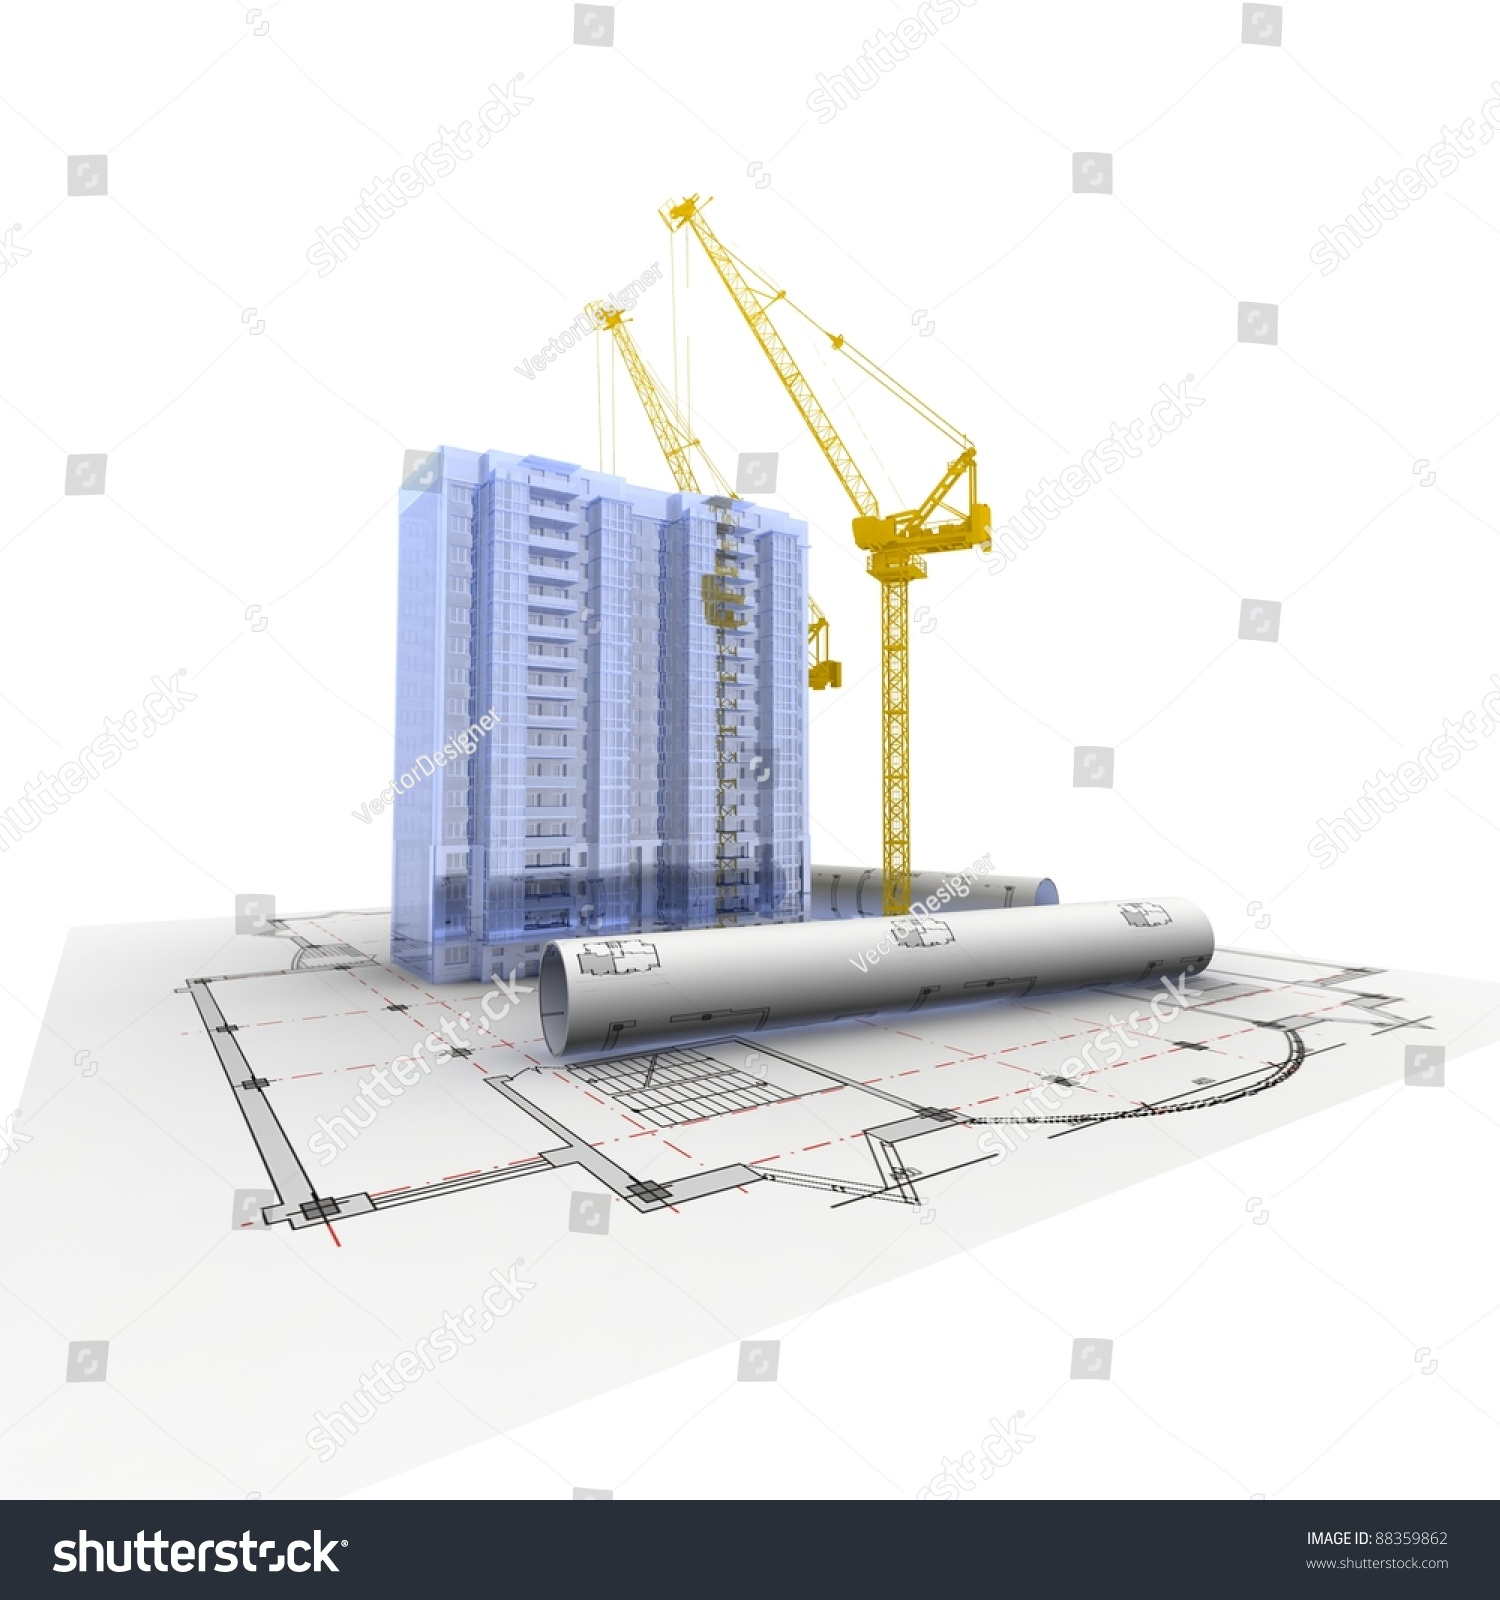 3d plan drawing stock photo 88359862 shutterstock for 3d plan drawing